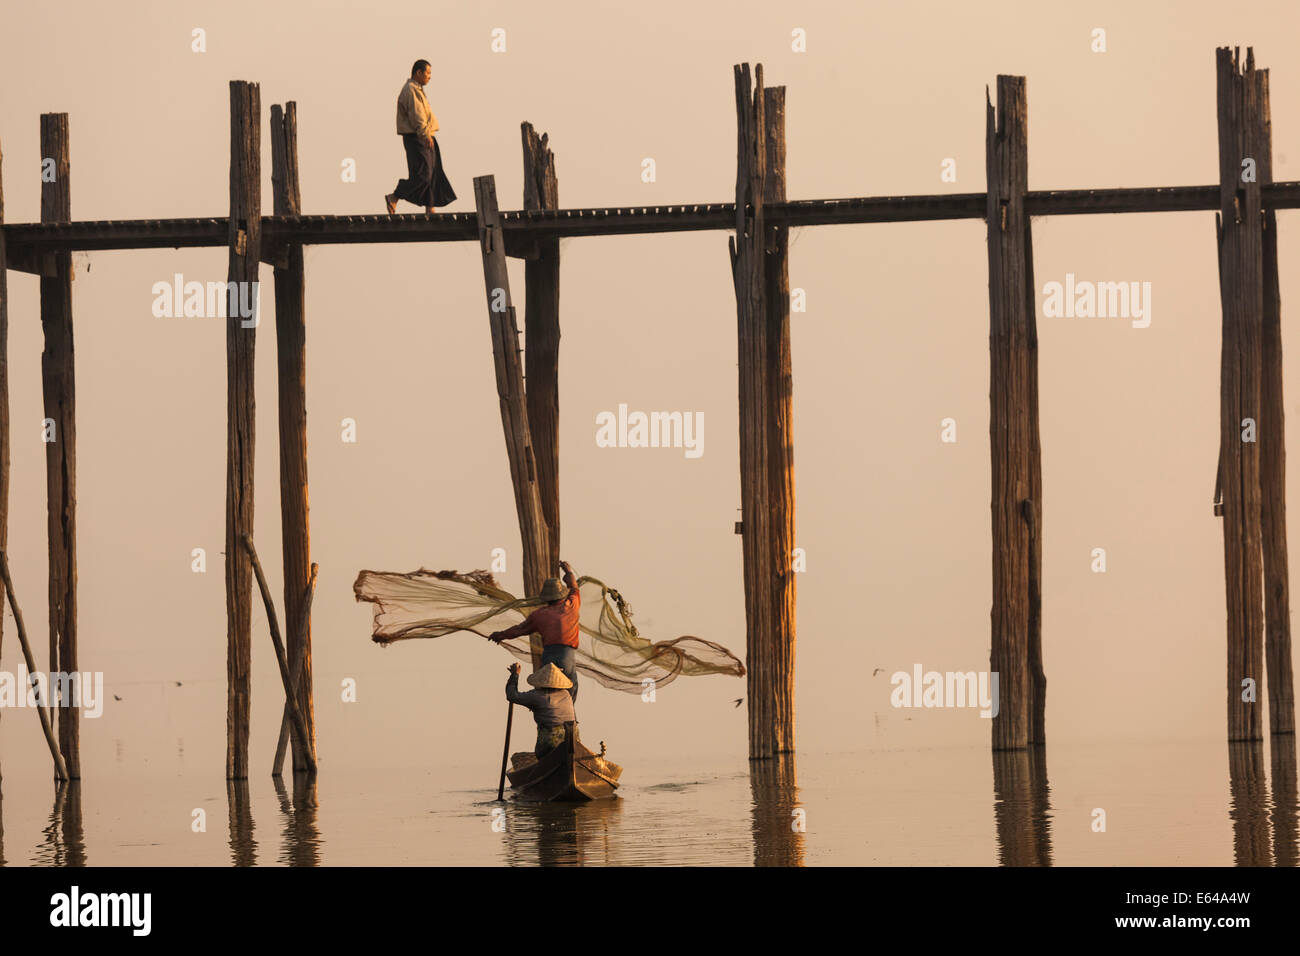 U Bein teak bridge at sunrise, Mandalay, Myanmar - Stock Image